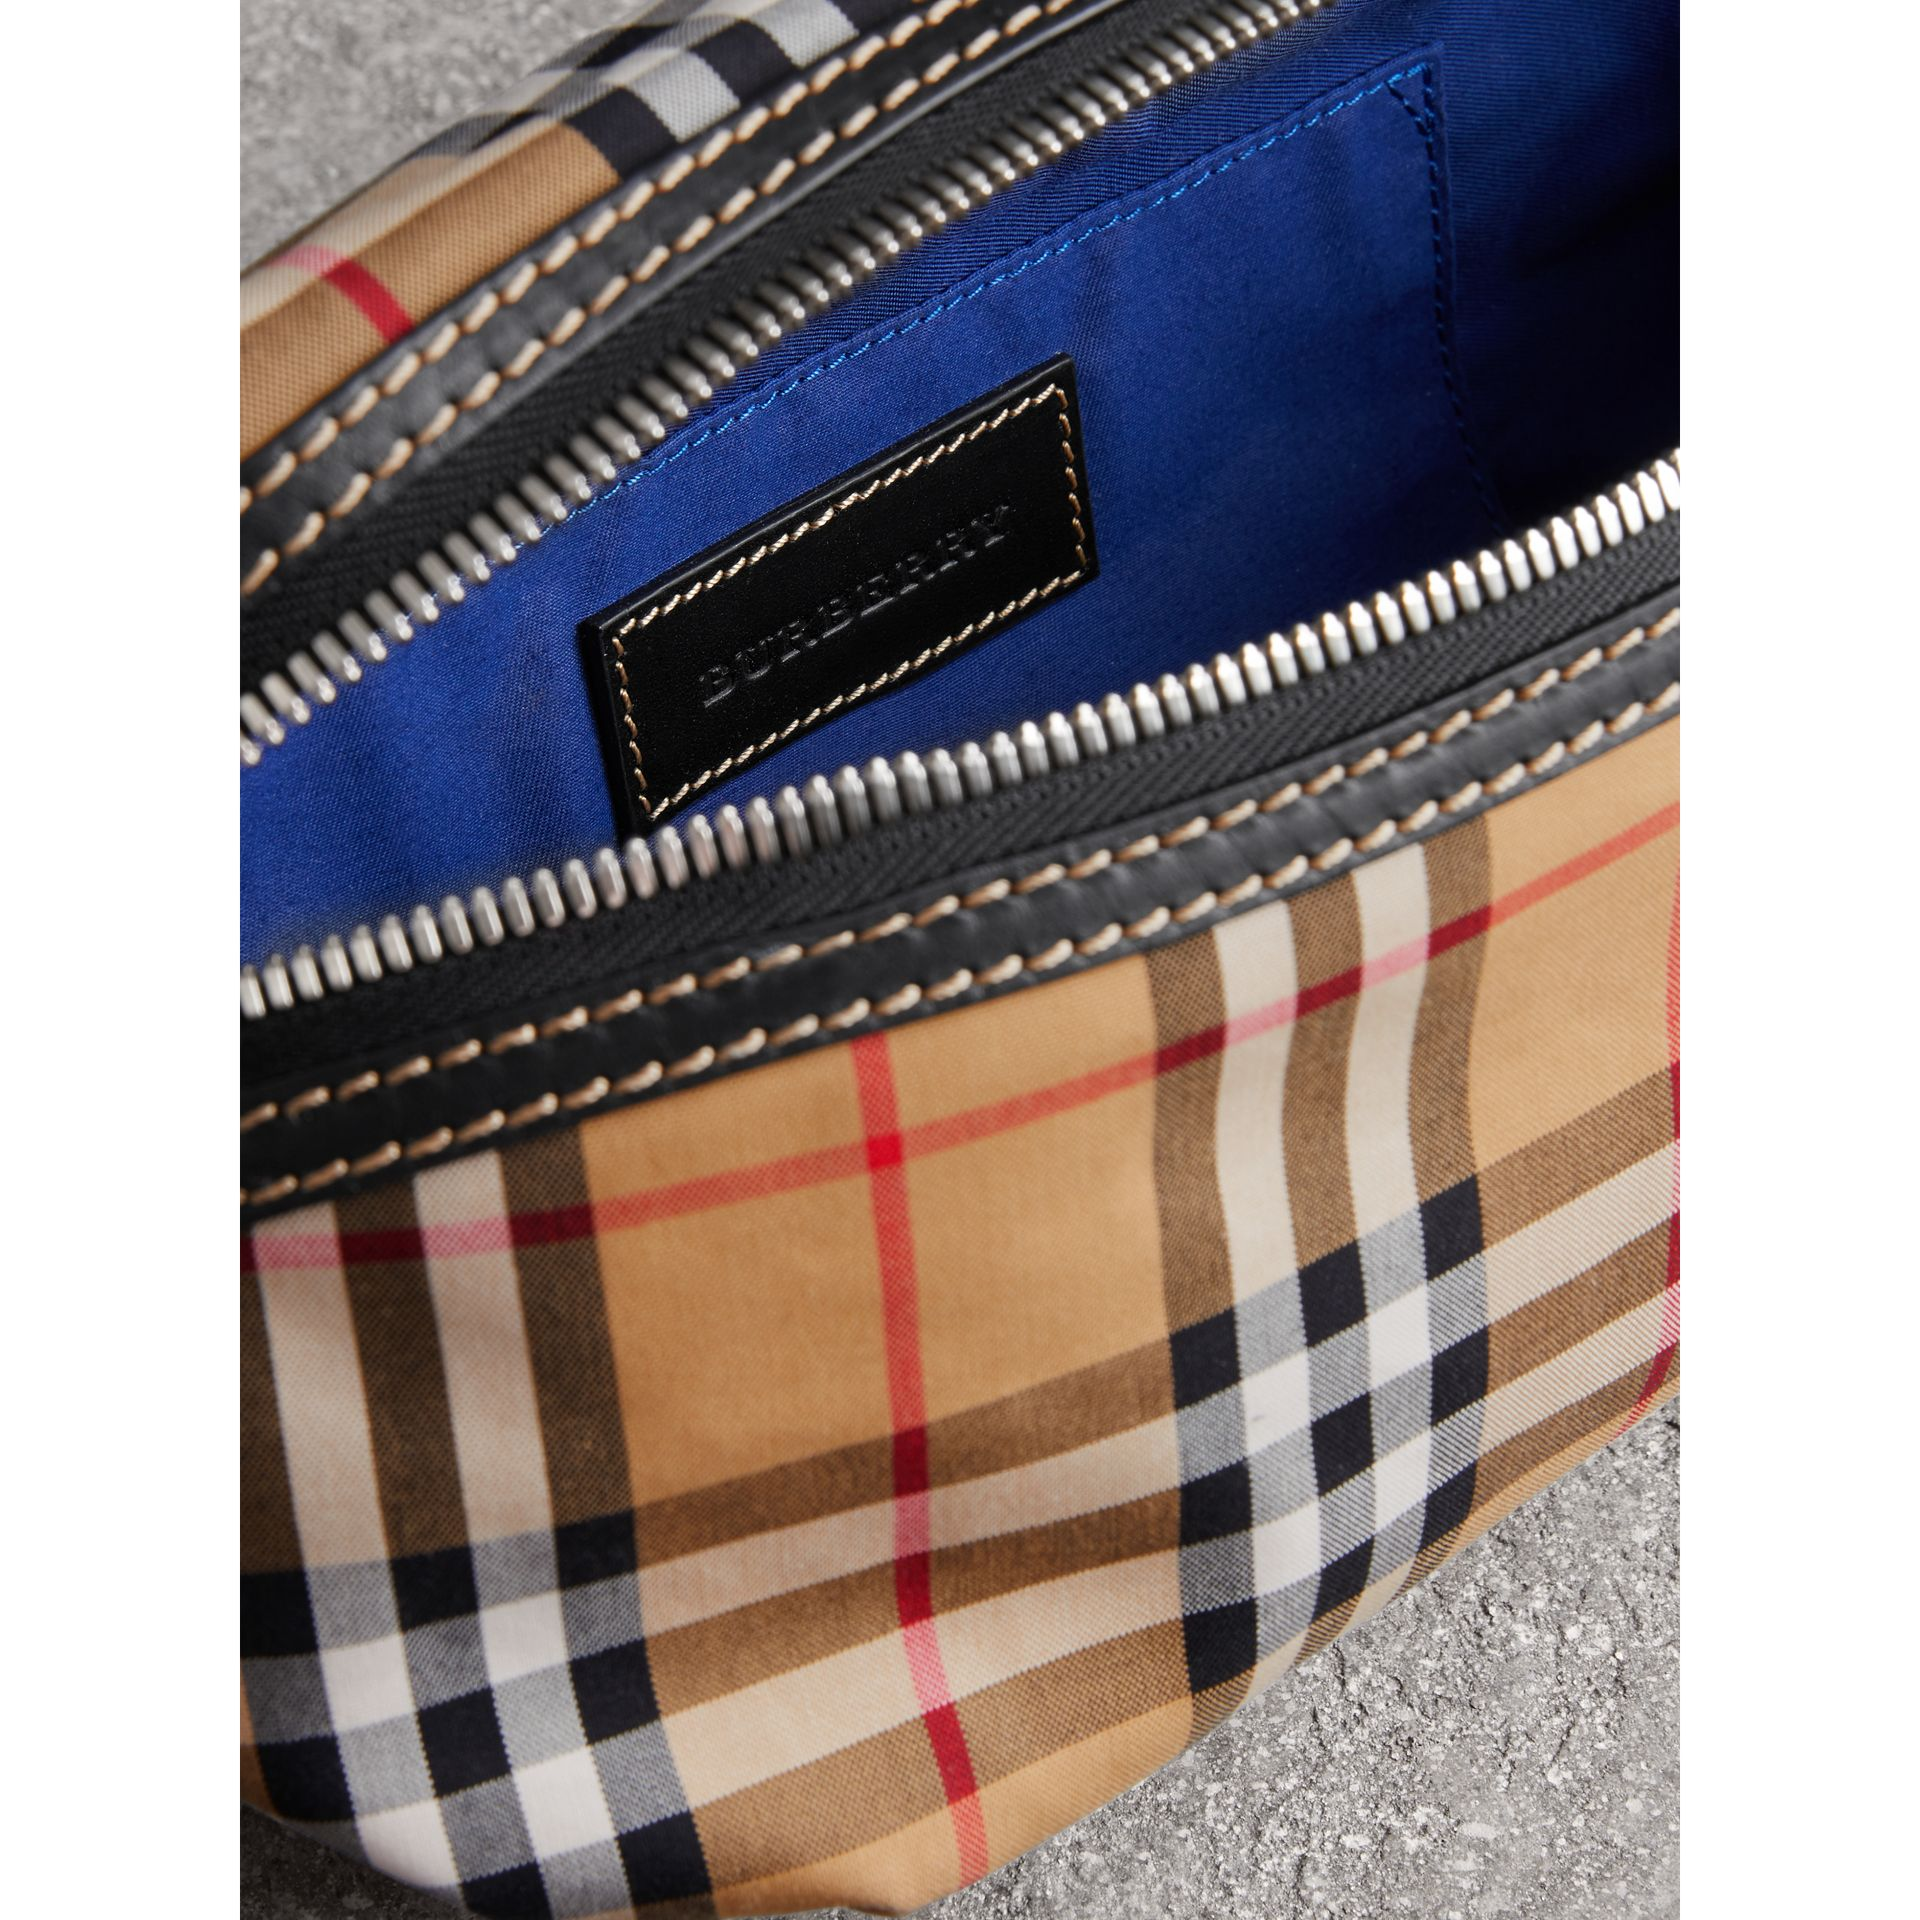 Medium Vintage Check Bum Bag in Canvas Blue - Men | Burberry - gallery image 5